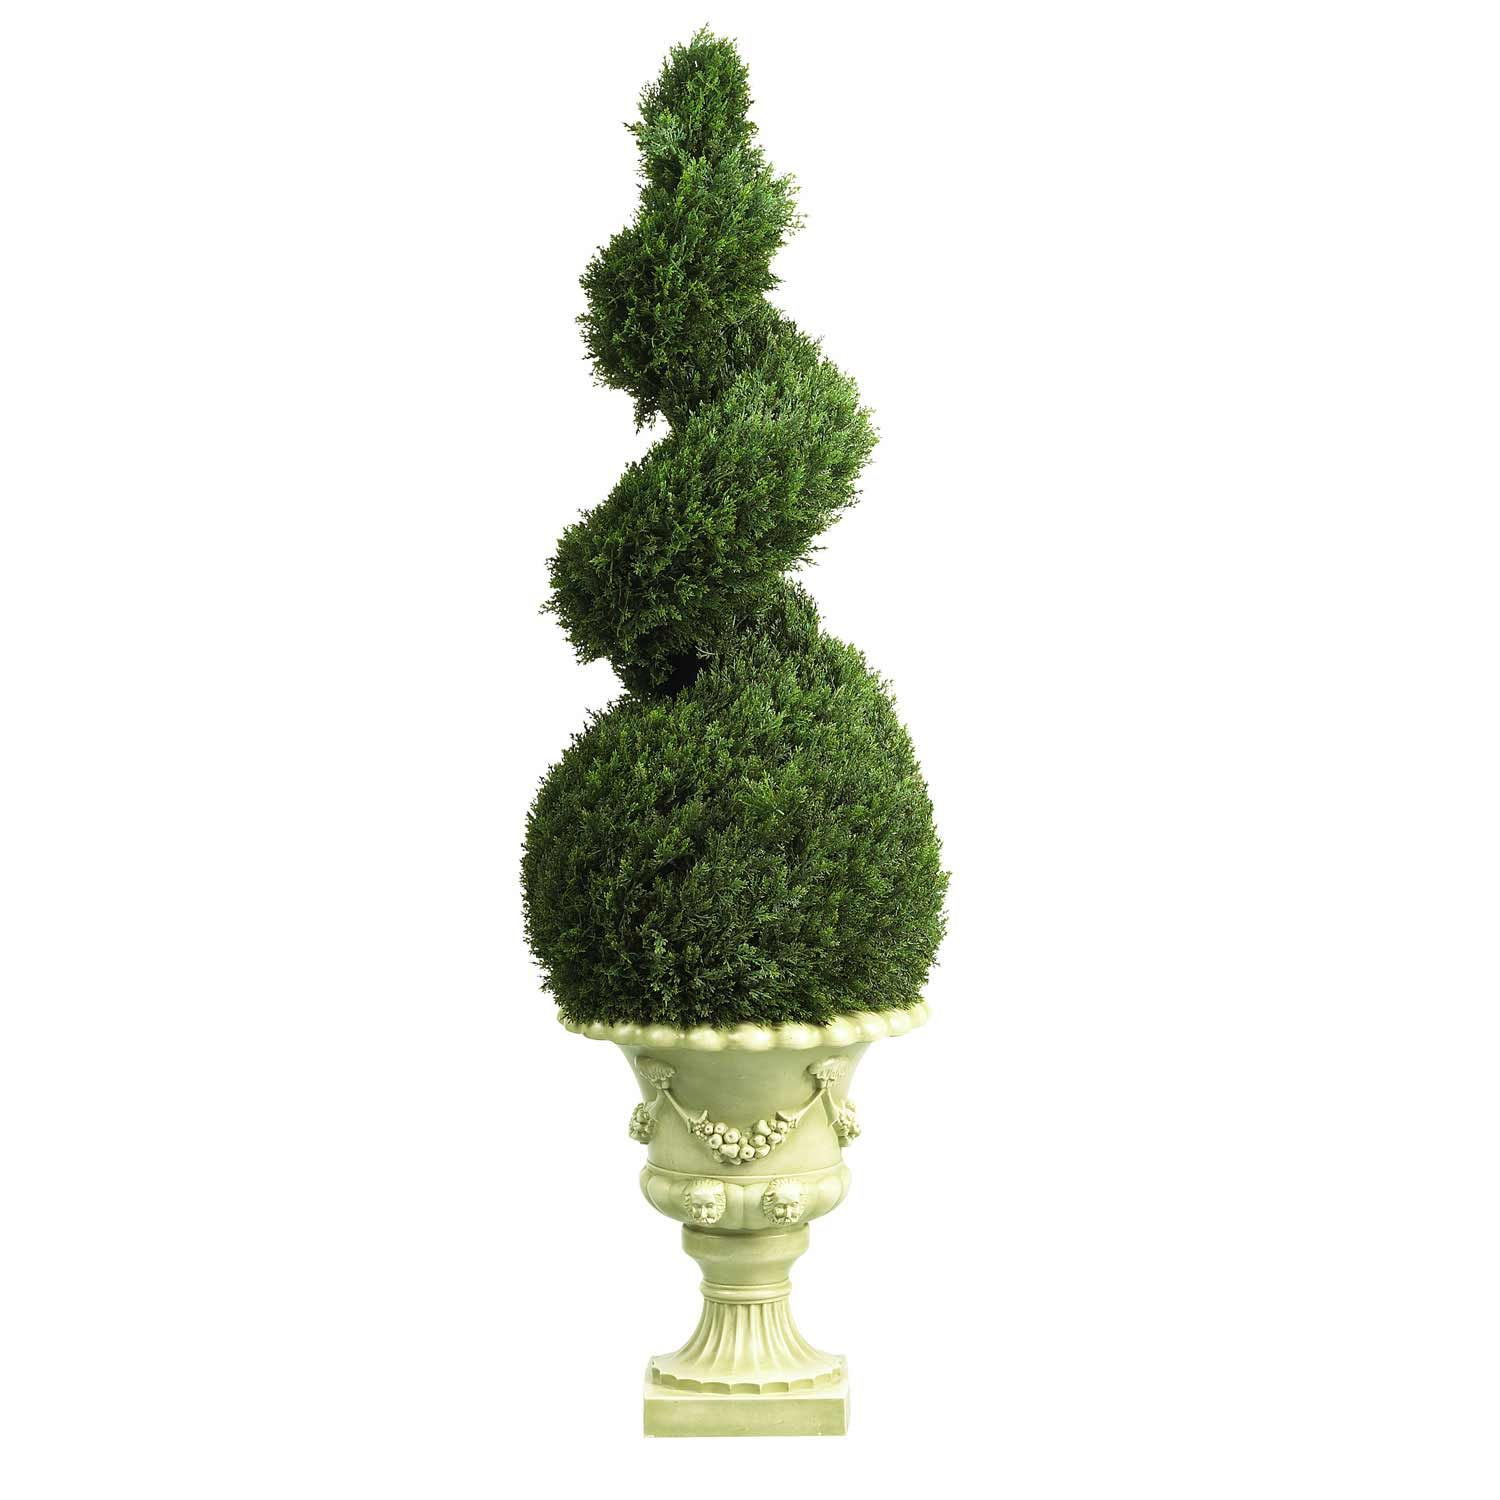 Decorative Urn Amusing 4 Foot Cedar Spiral Topiary In Decorative Urn  Urn And Topiary Design Inspiration